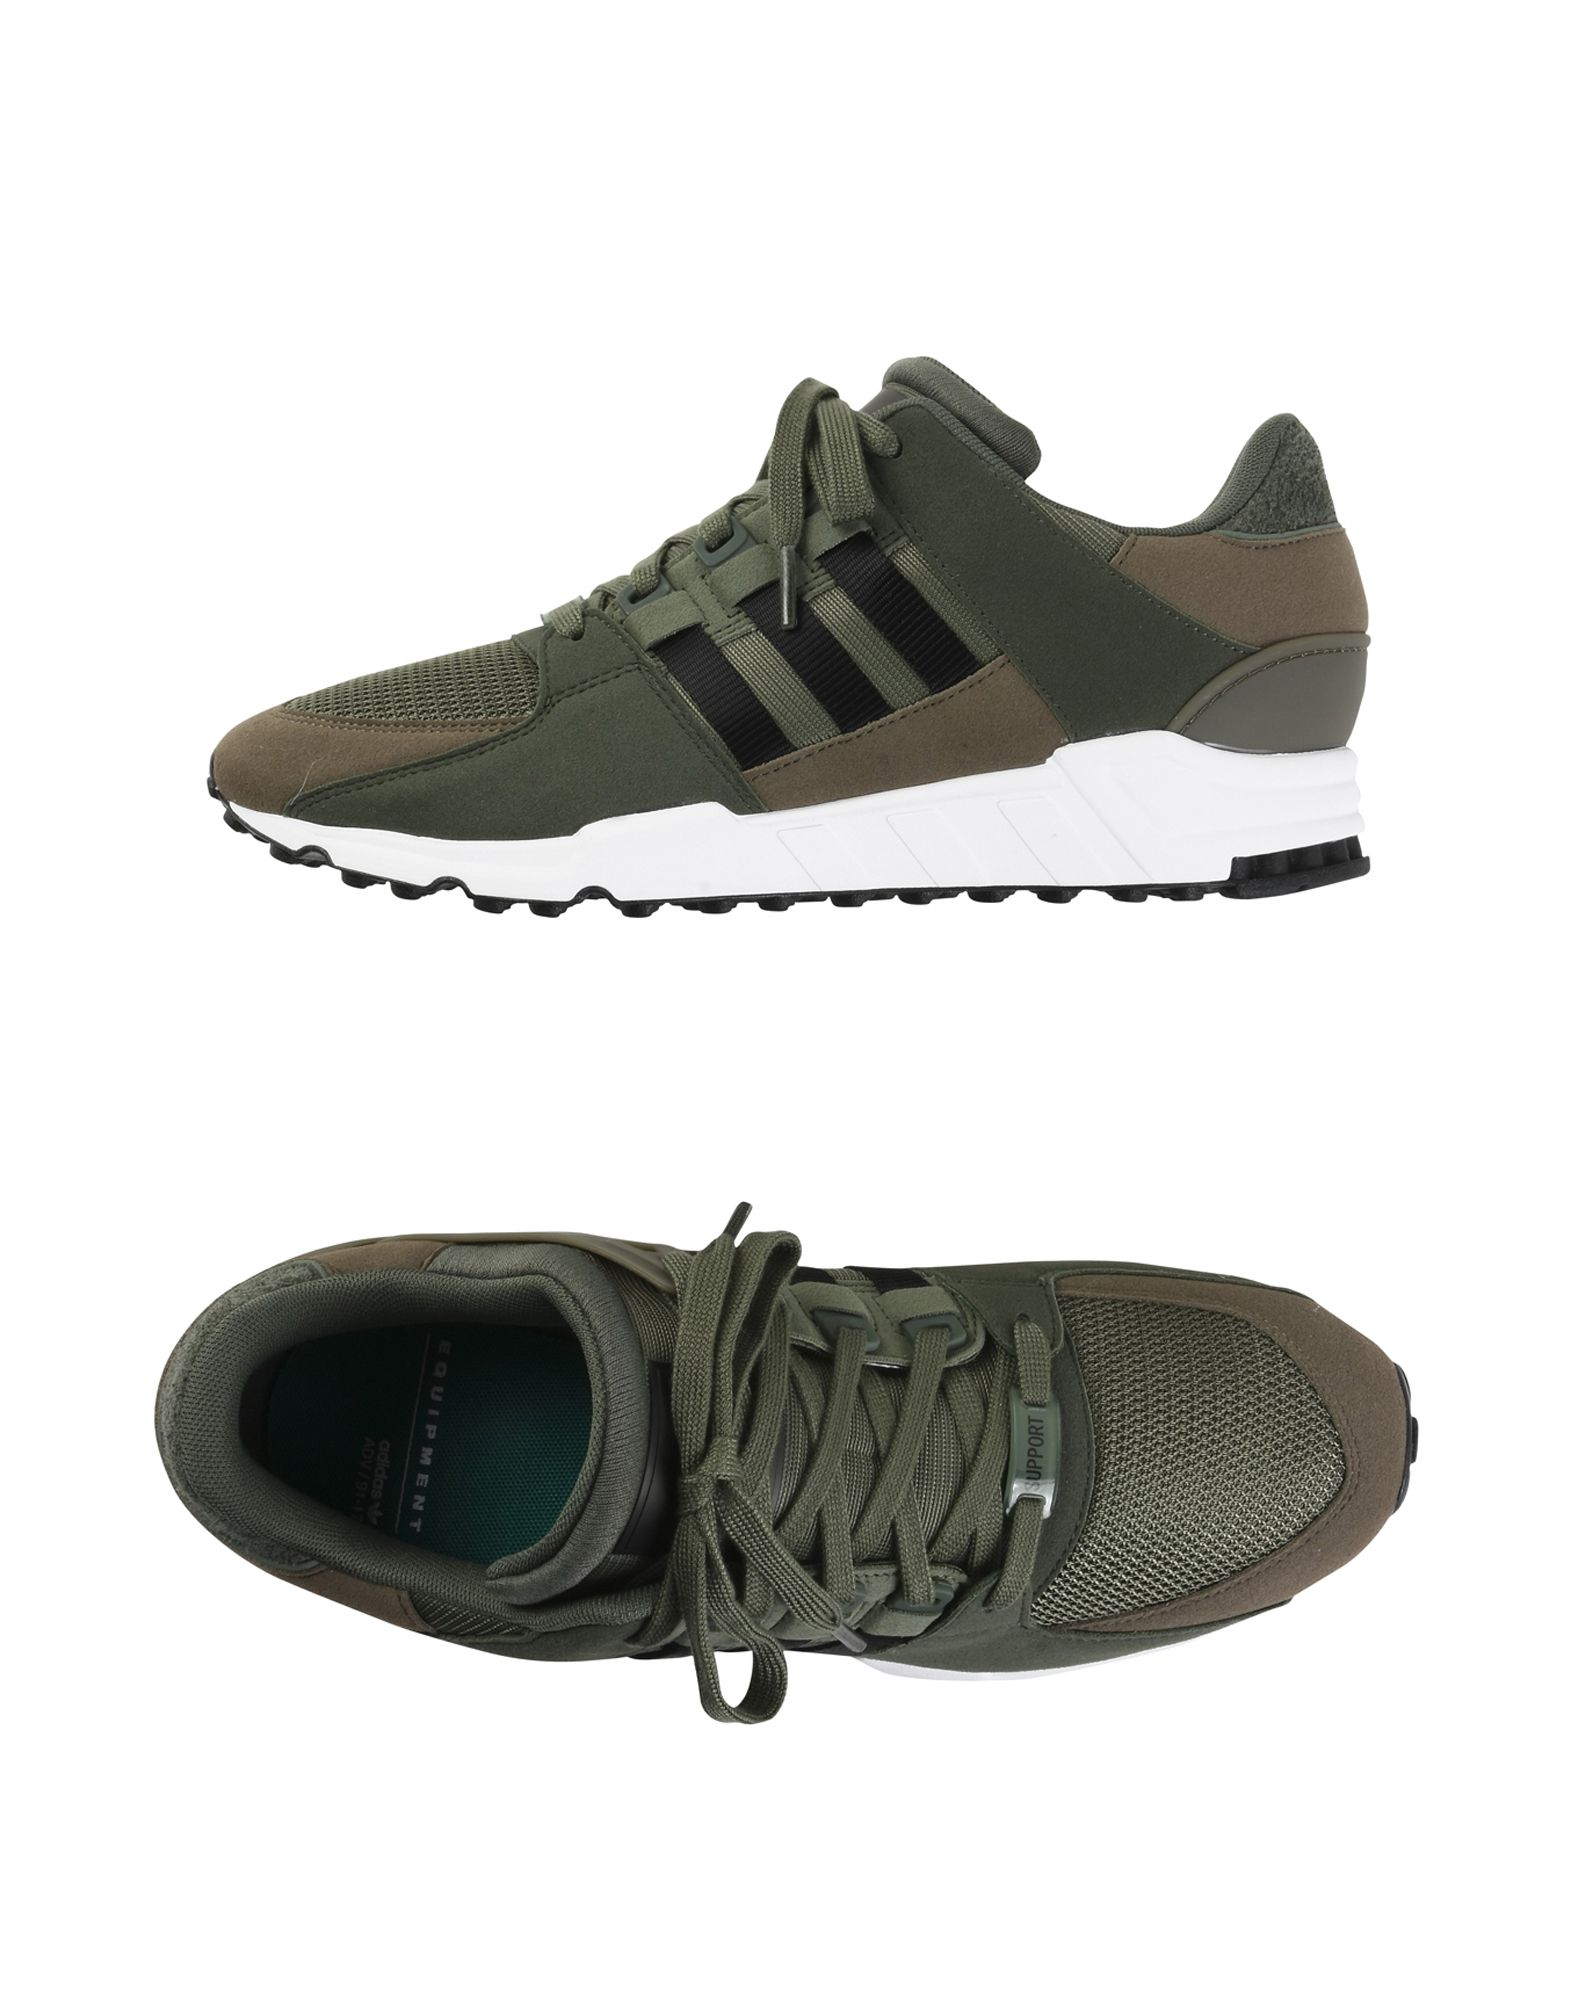 Sneakers Adidas Originals Eqt Support Rf - Uomo - Acquista online su